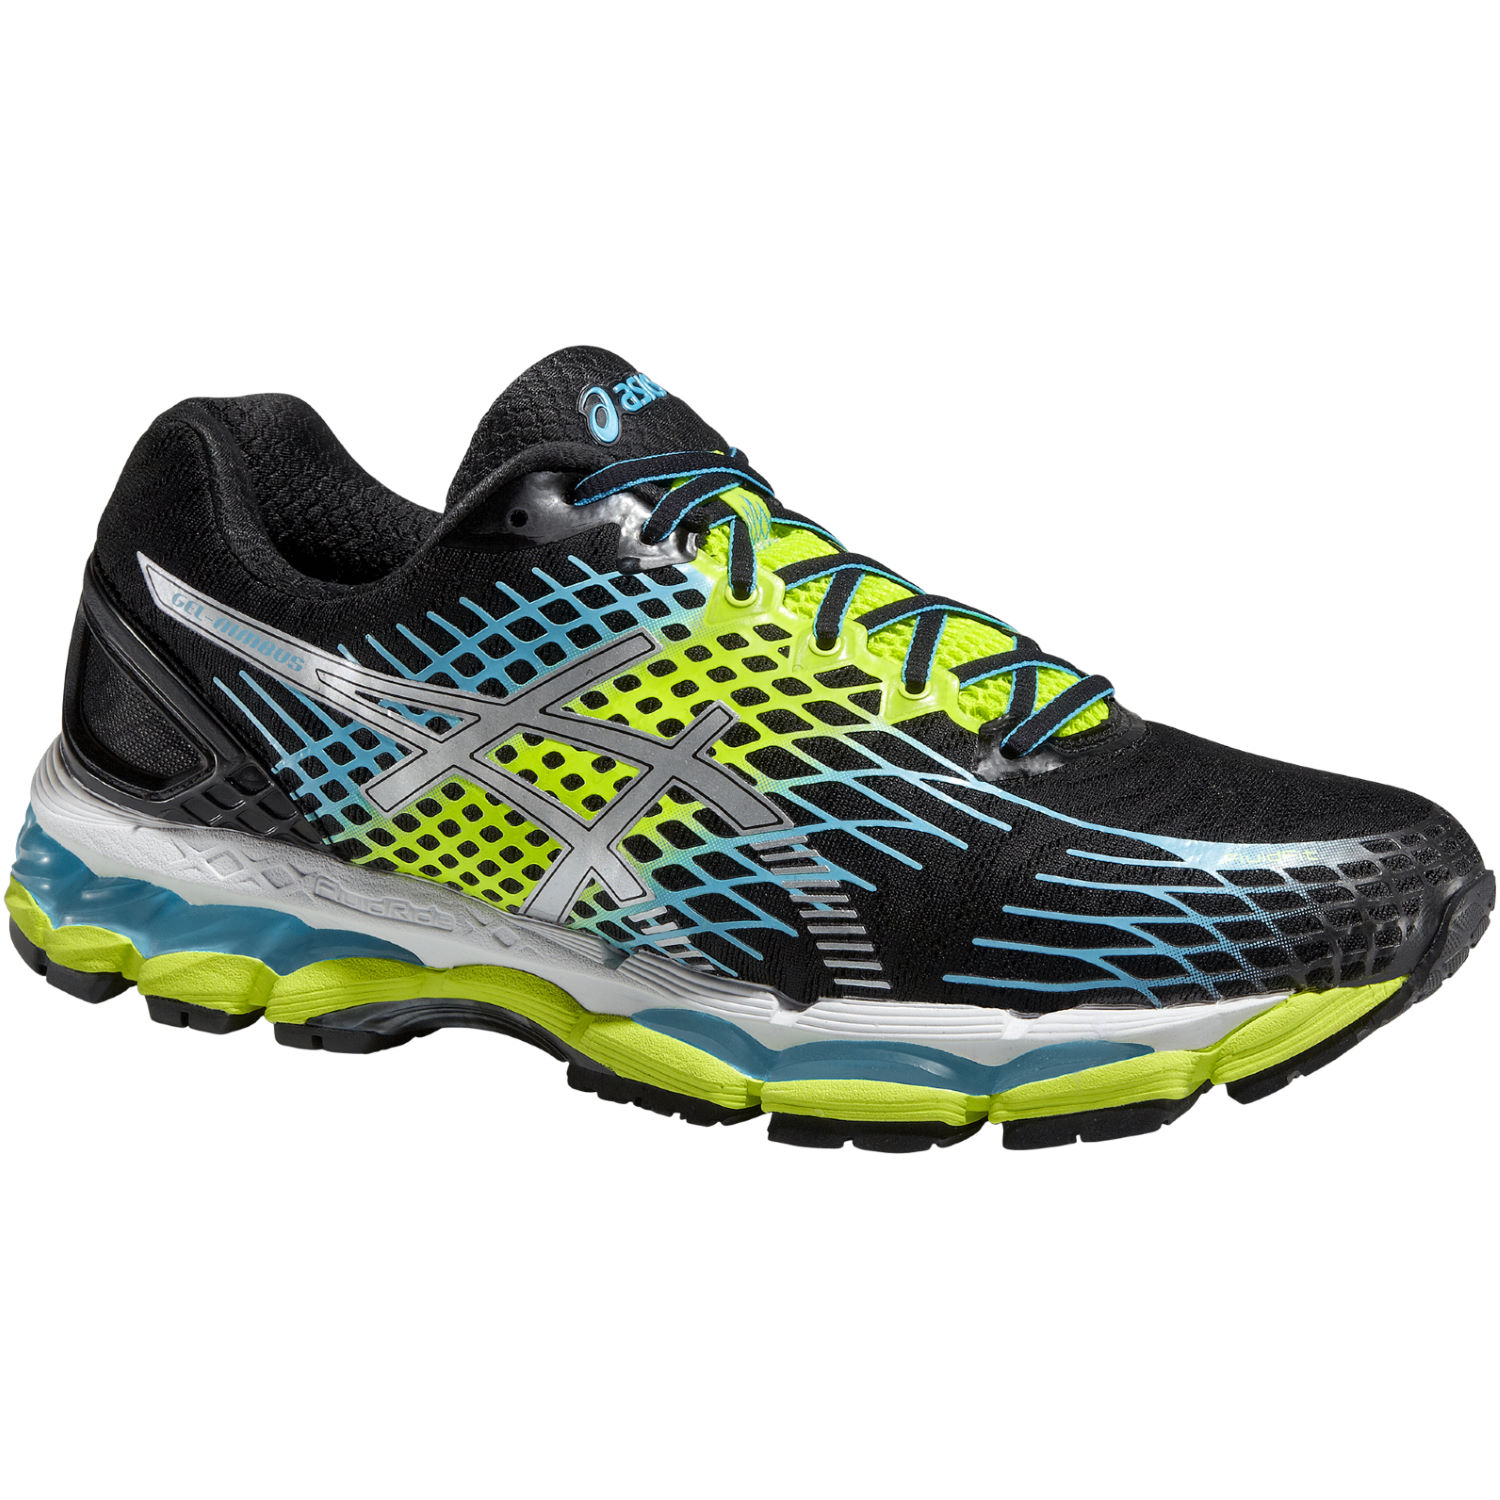 wiggle asics gel nimbus 17 shoes ss15 cushion. Black Bedroom Furniture Sets. Home Design Ideas